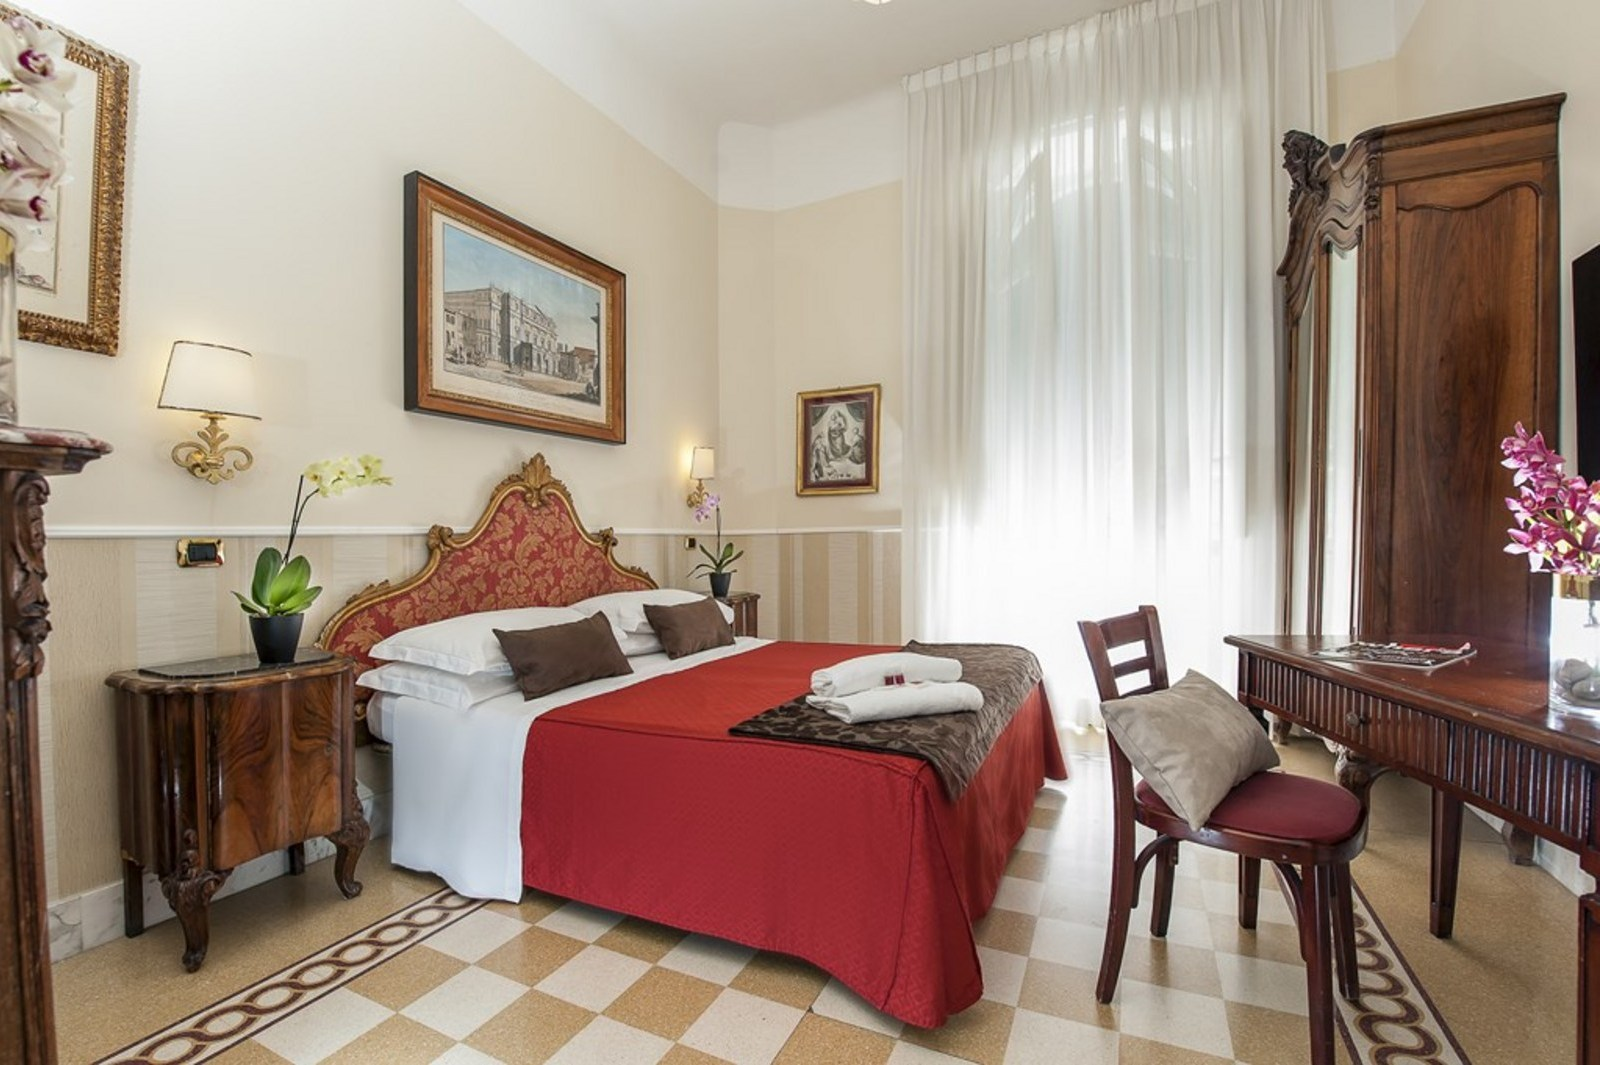 <a href='http://www.nicehotelrome.com' target='_blank'>www.nicehotelrome.com<br />Nice Hotel</a>